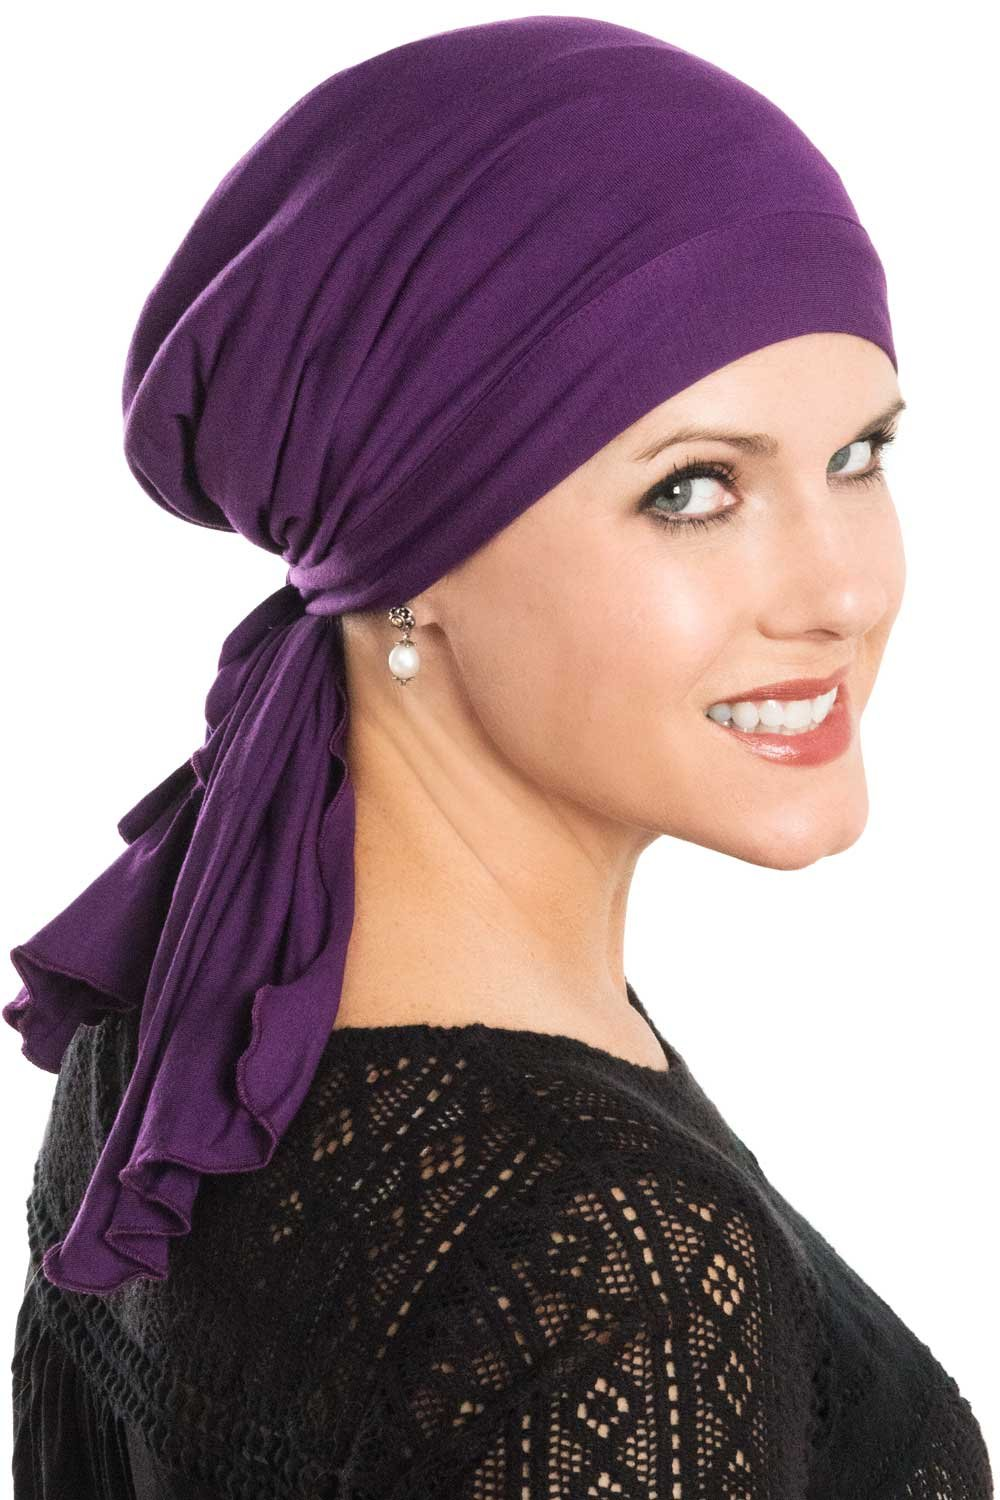 Cardani So Simple Scarf - Pre Tied Head Scarf for Women in Soft Bamboo - Cancer & Chemo Patients Luxury Bamboo - Multi Paisley